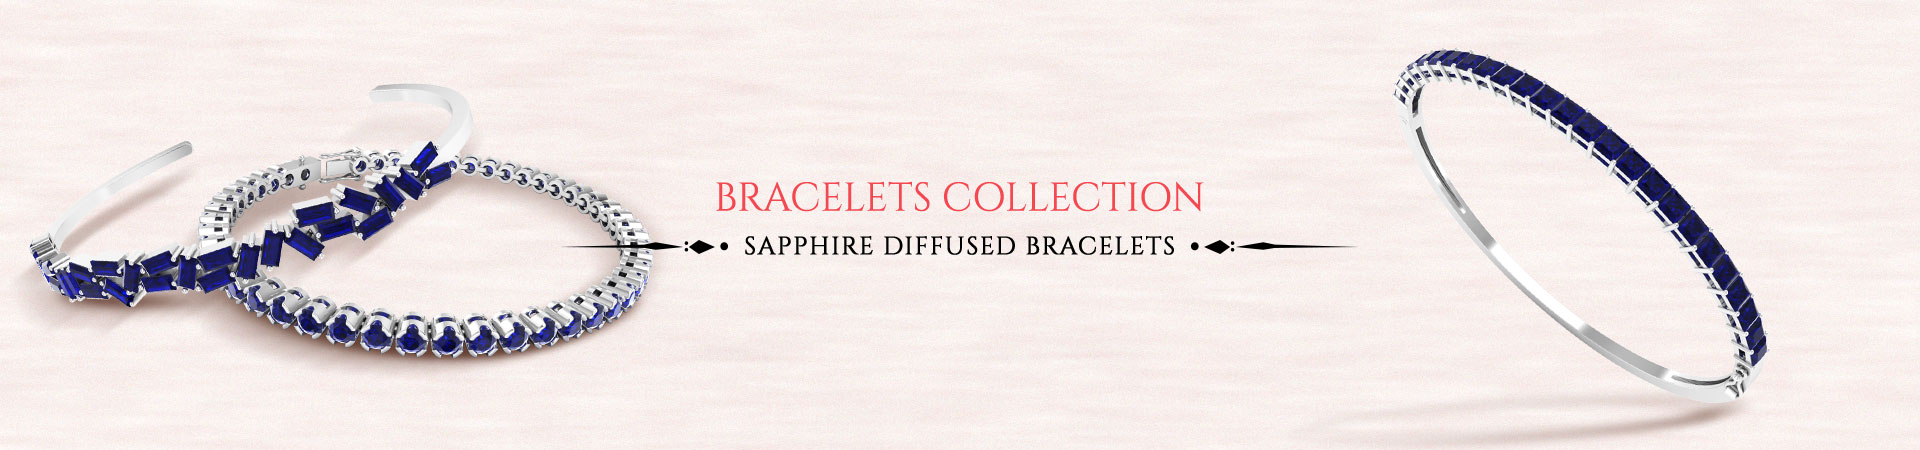 Sapphire Diffused Bracelet